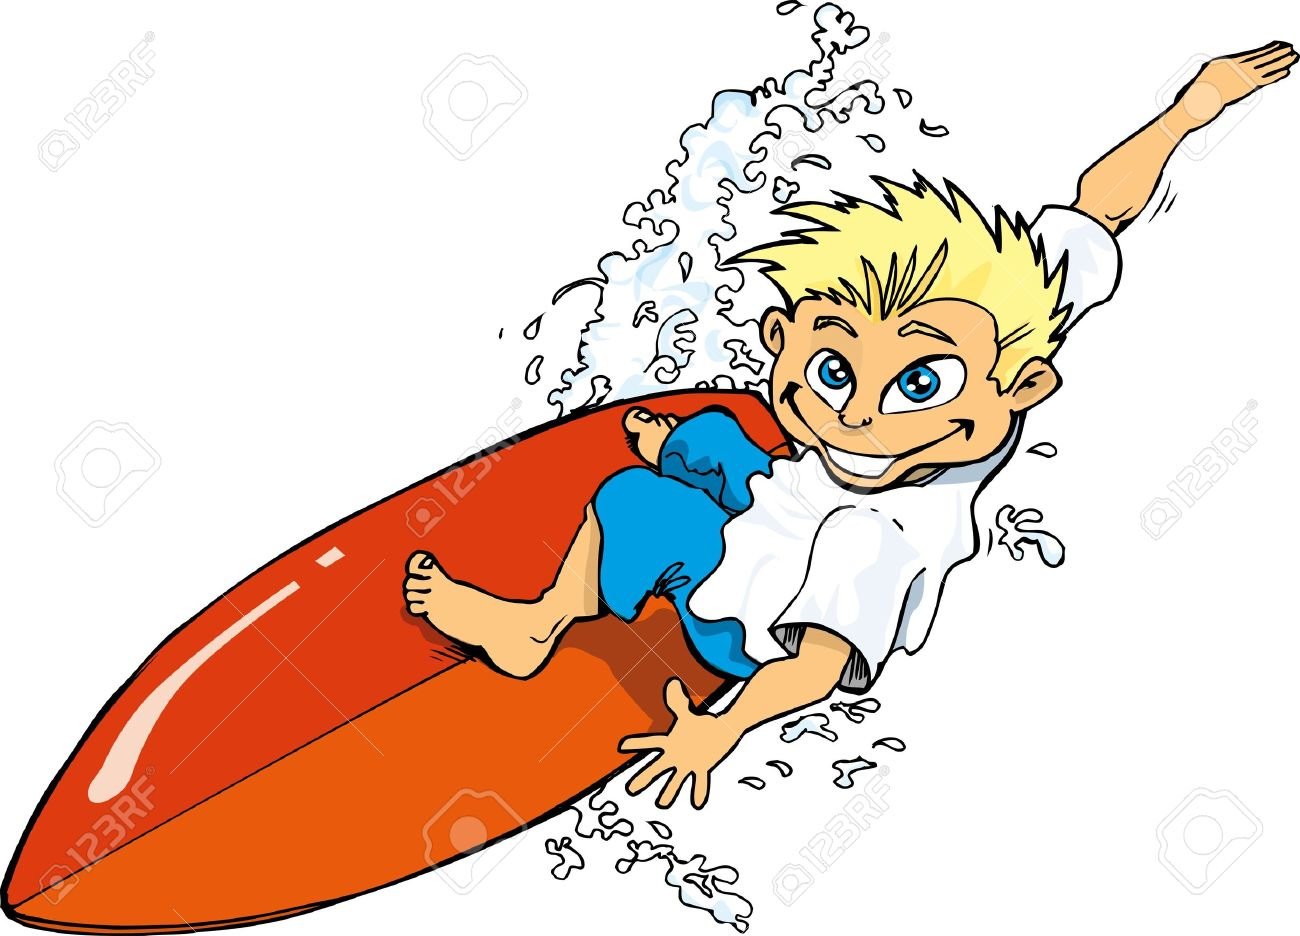 hasc fun day sunday the 9th august holywell swimming club surfboard clipart black and white crossed surfboard clipart black and white crossed